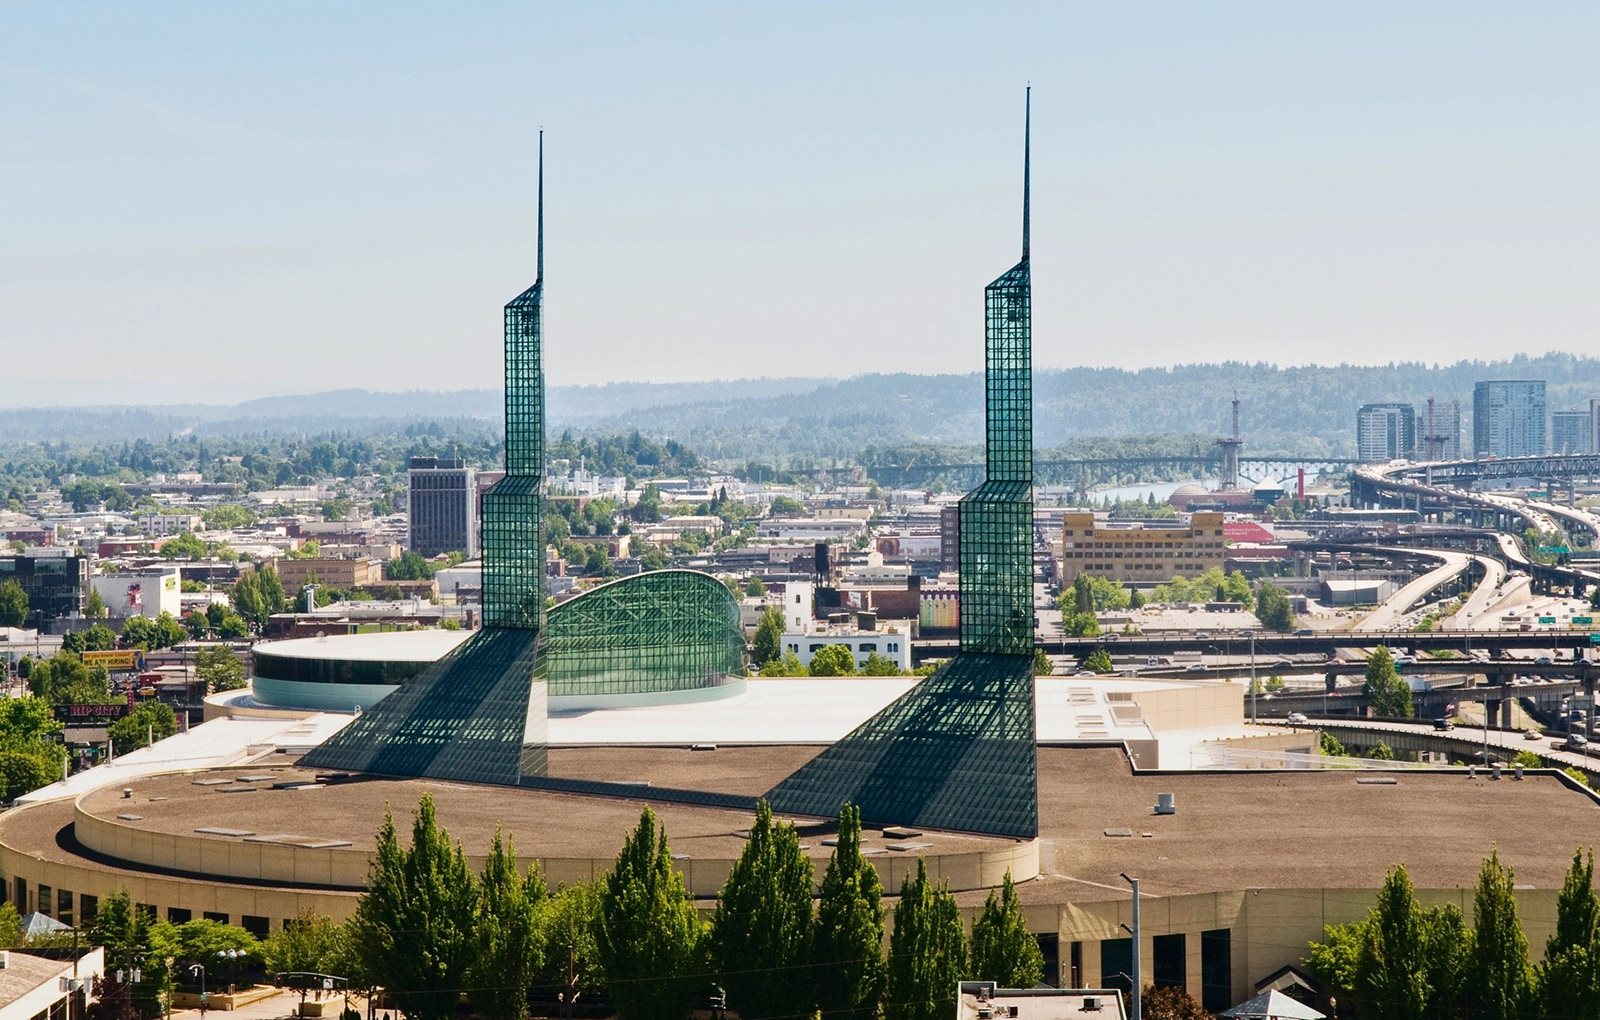 City views of Towers at Pacifica Senior Living Calaroga Terrace, Portland, 97232